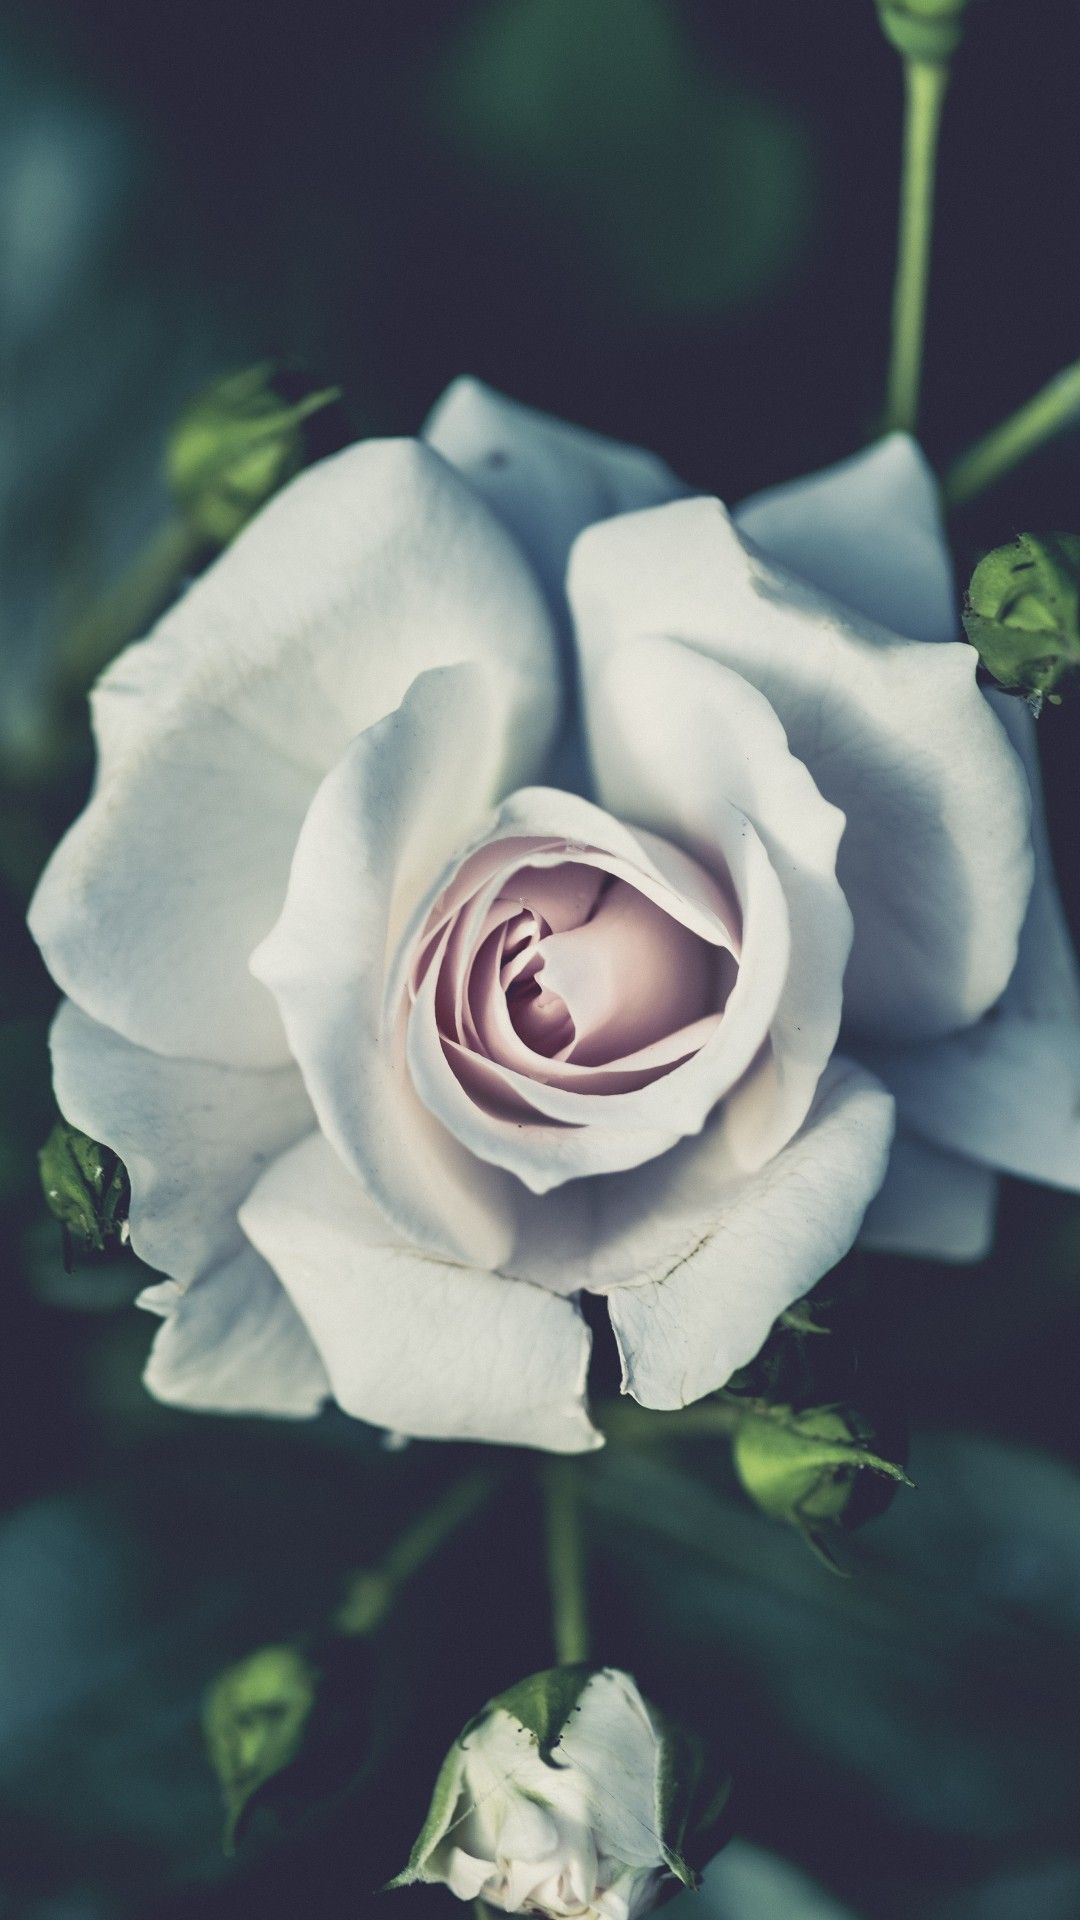 white rose iphone wallpapers top free